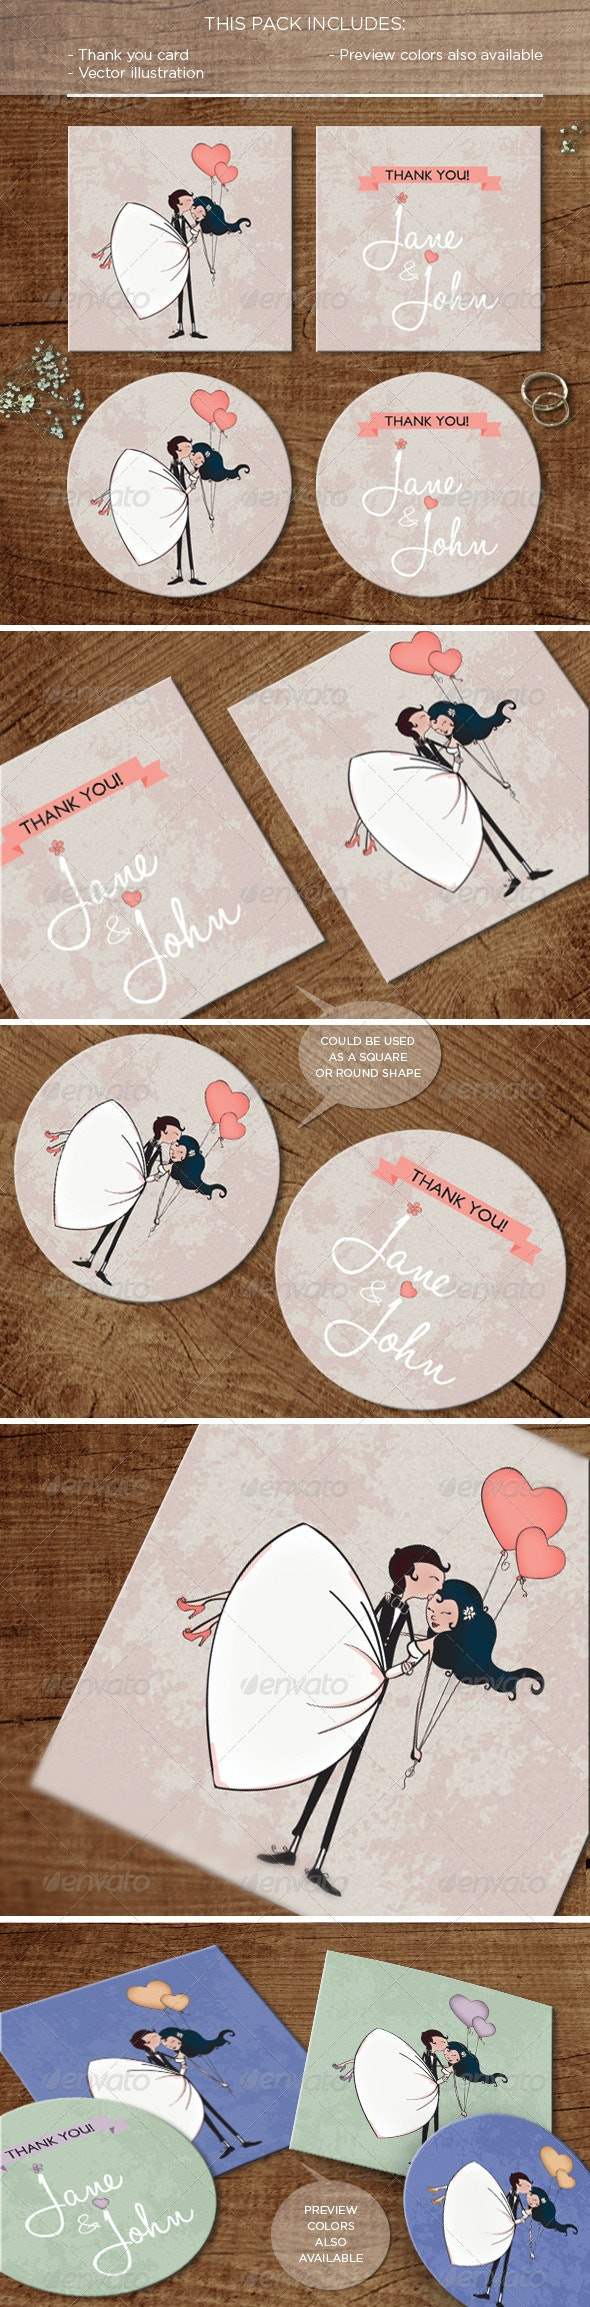 In the Air: Thank you Card - Weddings Cards & Invites